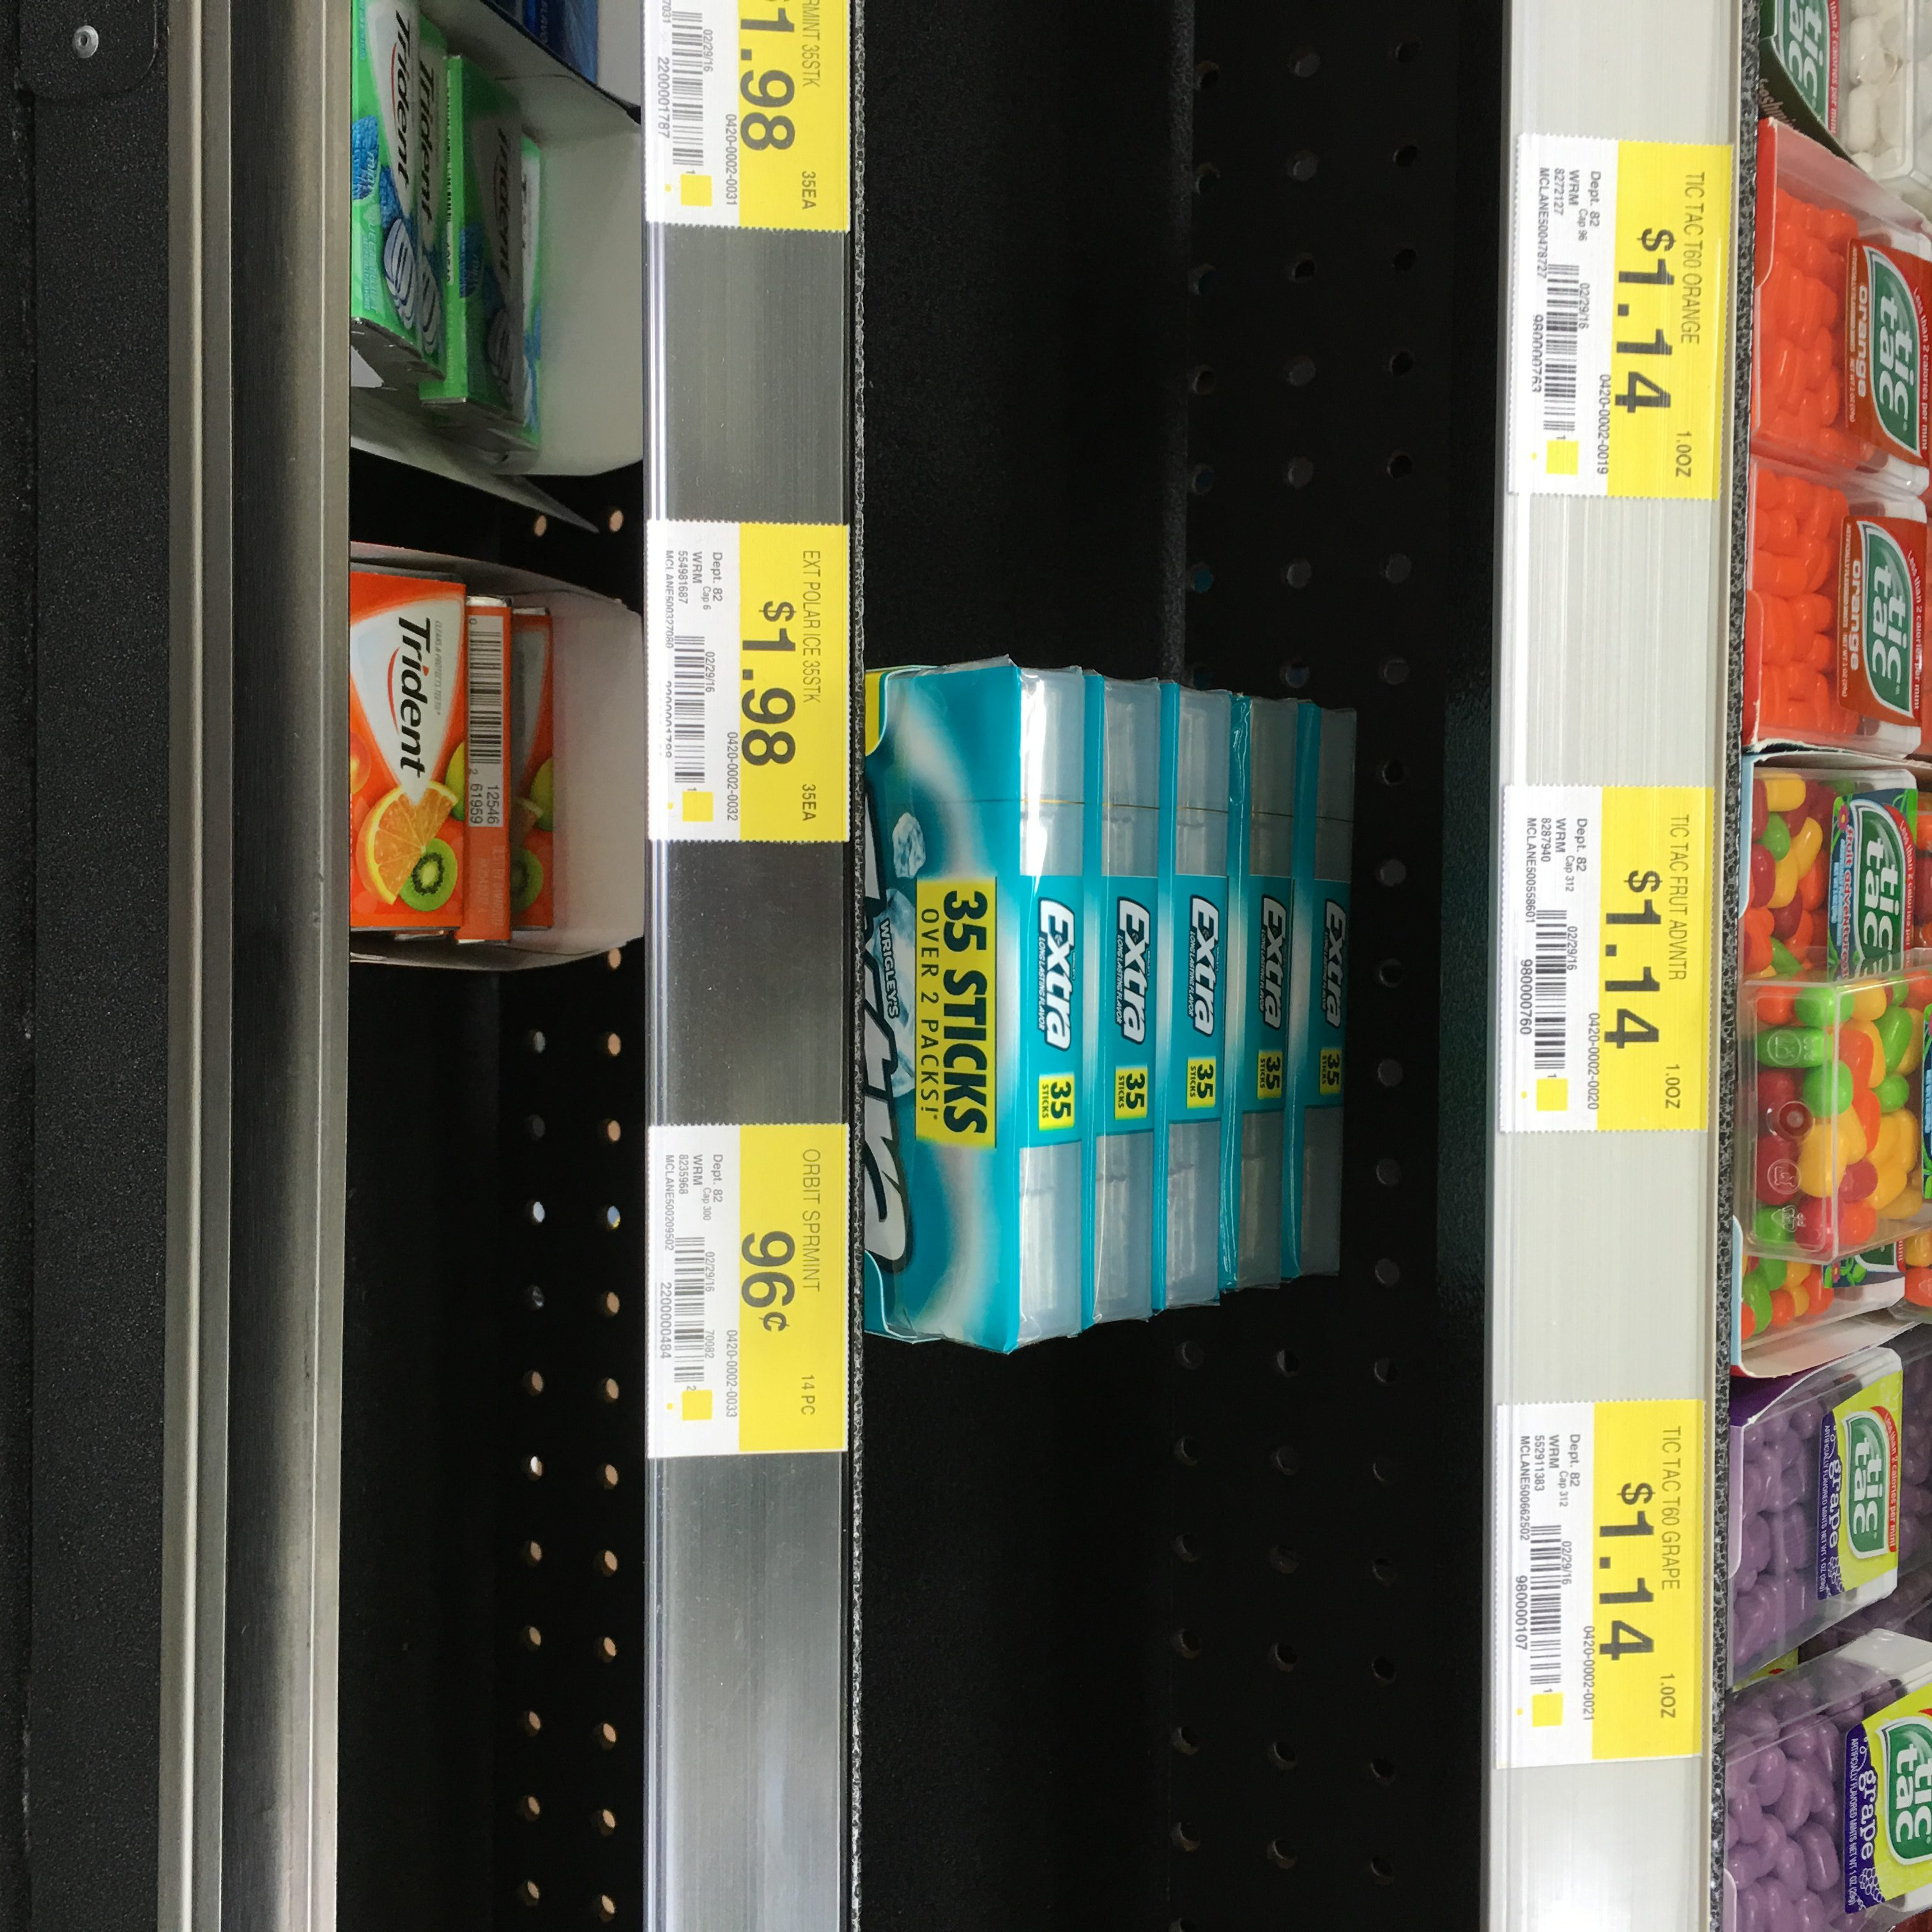 where to find extra gum in walmart